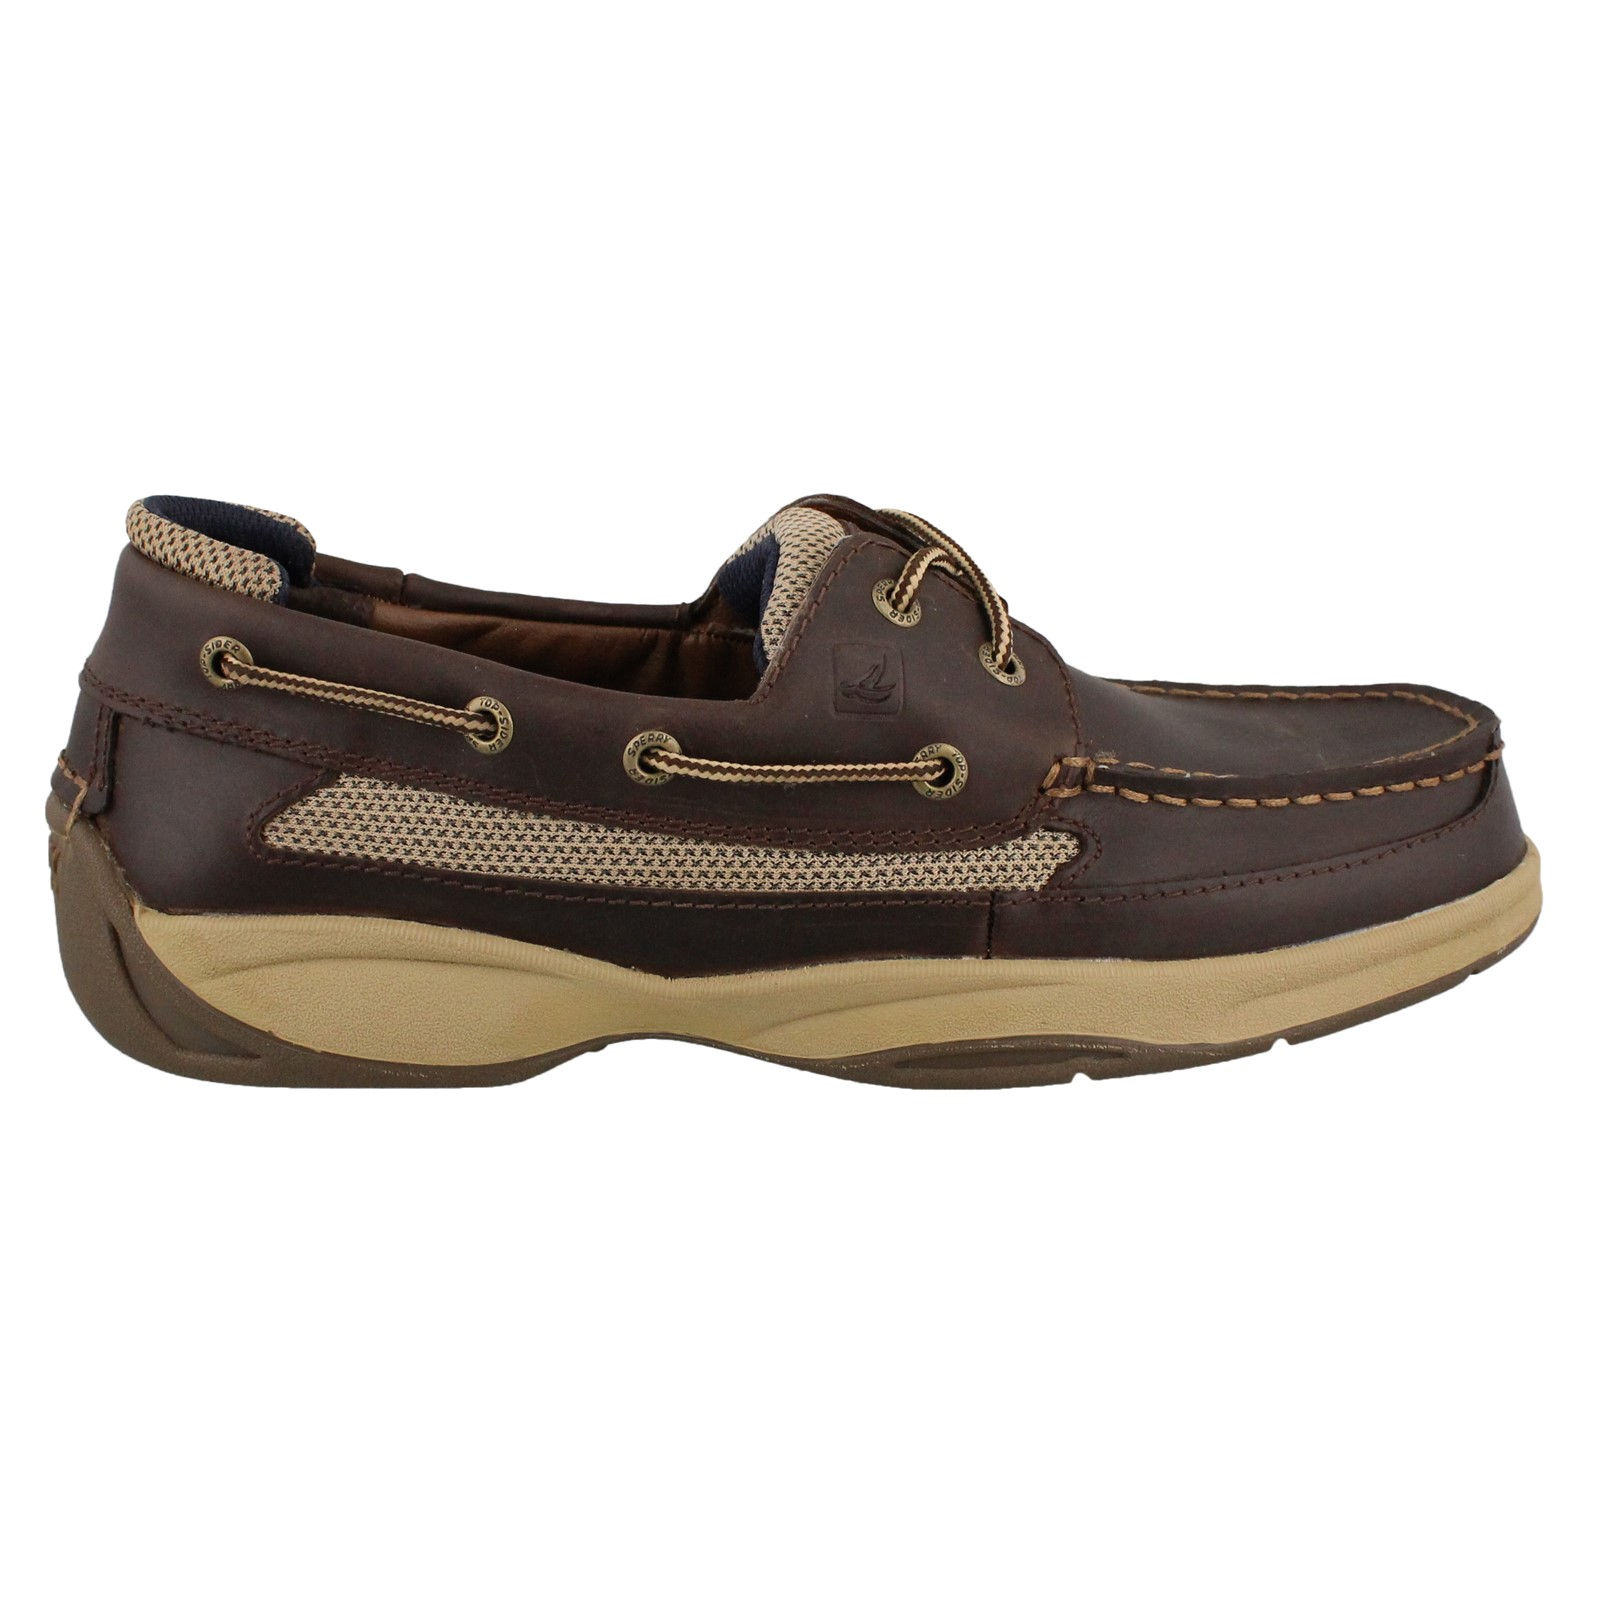 Men's Sperry, Lanyard Boat Shoe